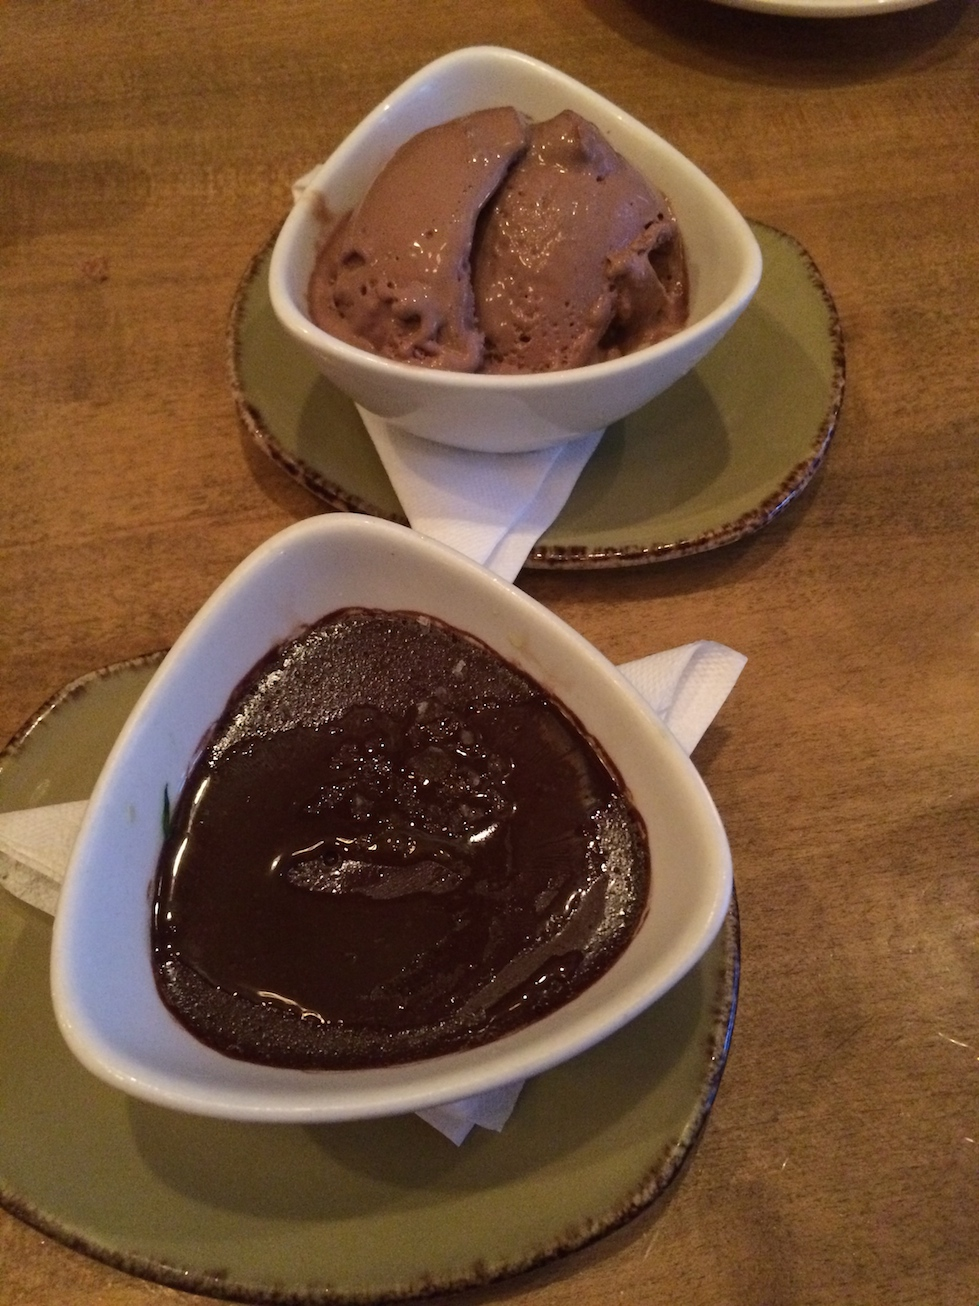 Chocolate Gelato and Dessert